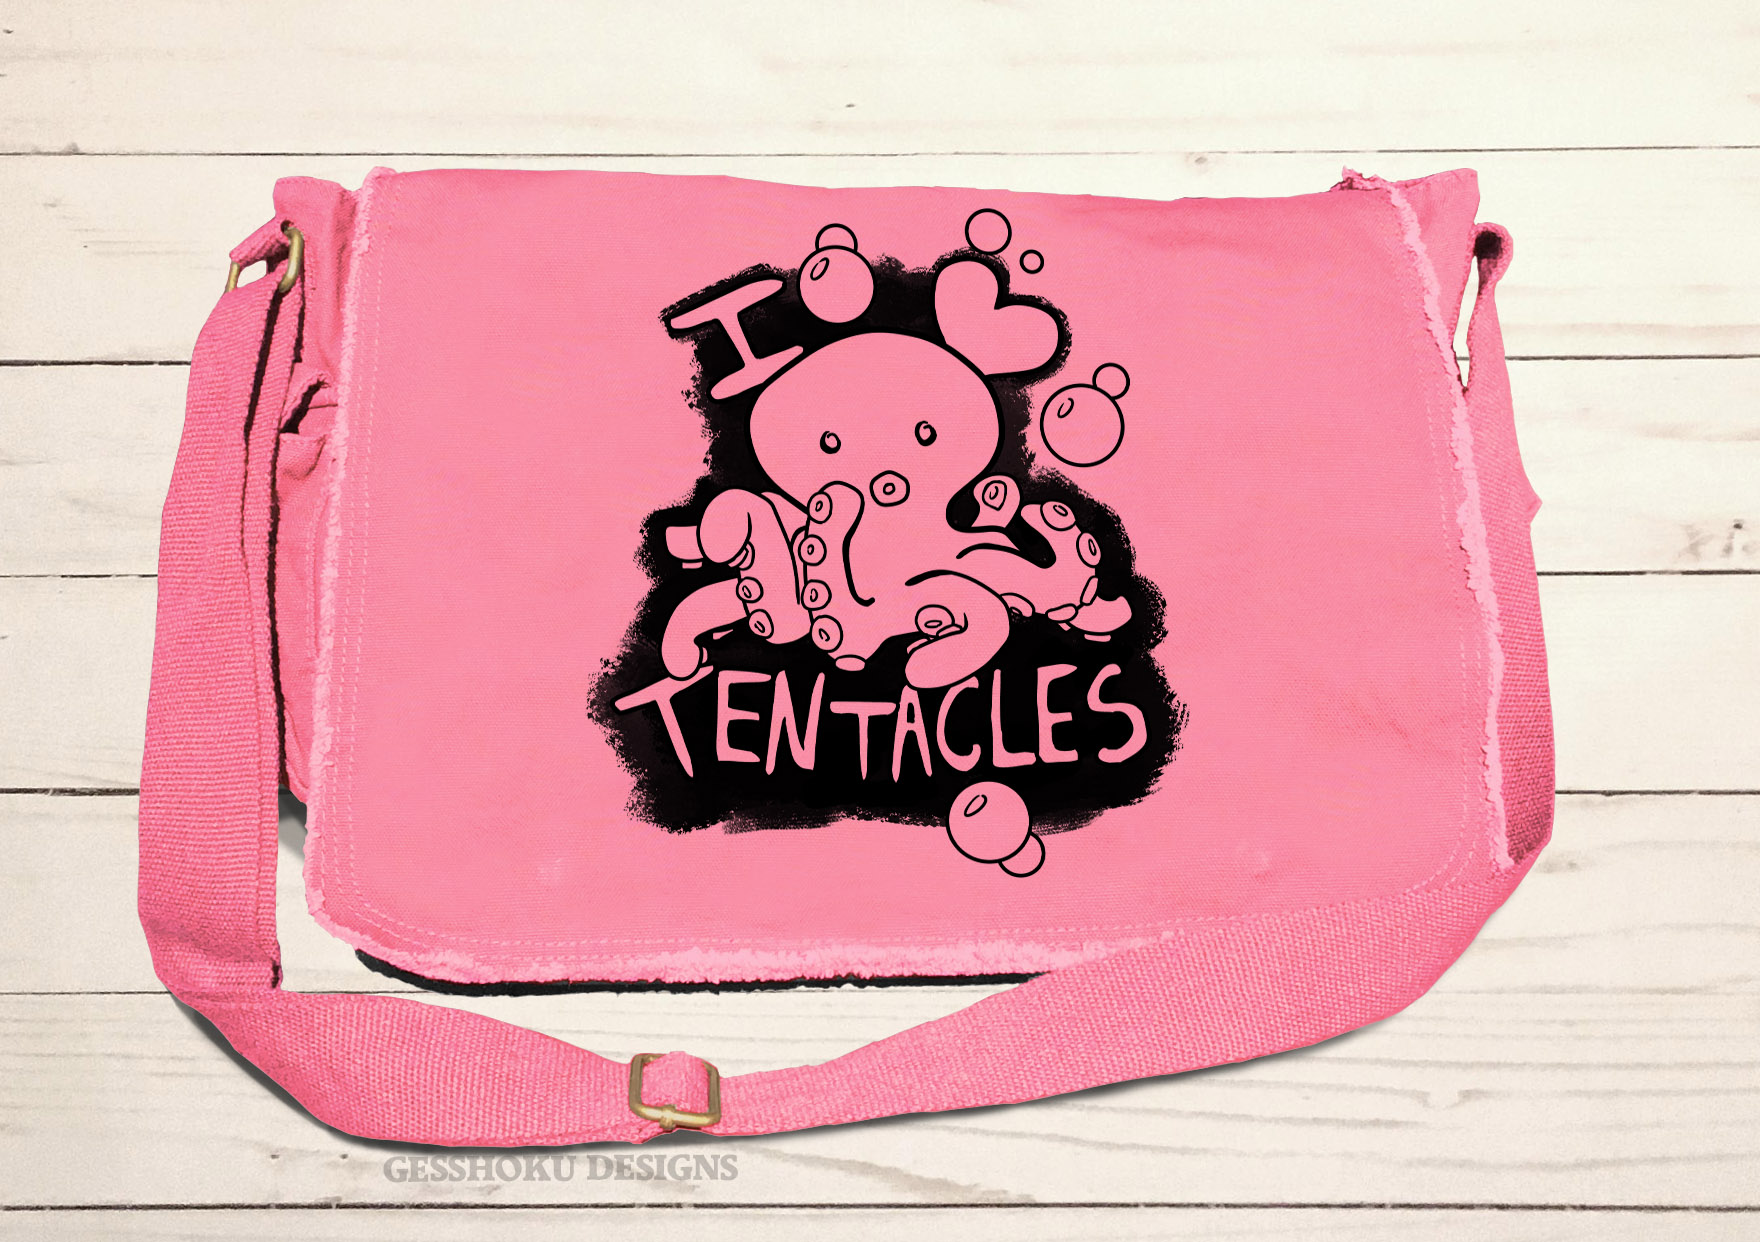 I Love Tentacles Messenger Bag - Pink